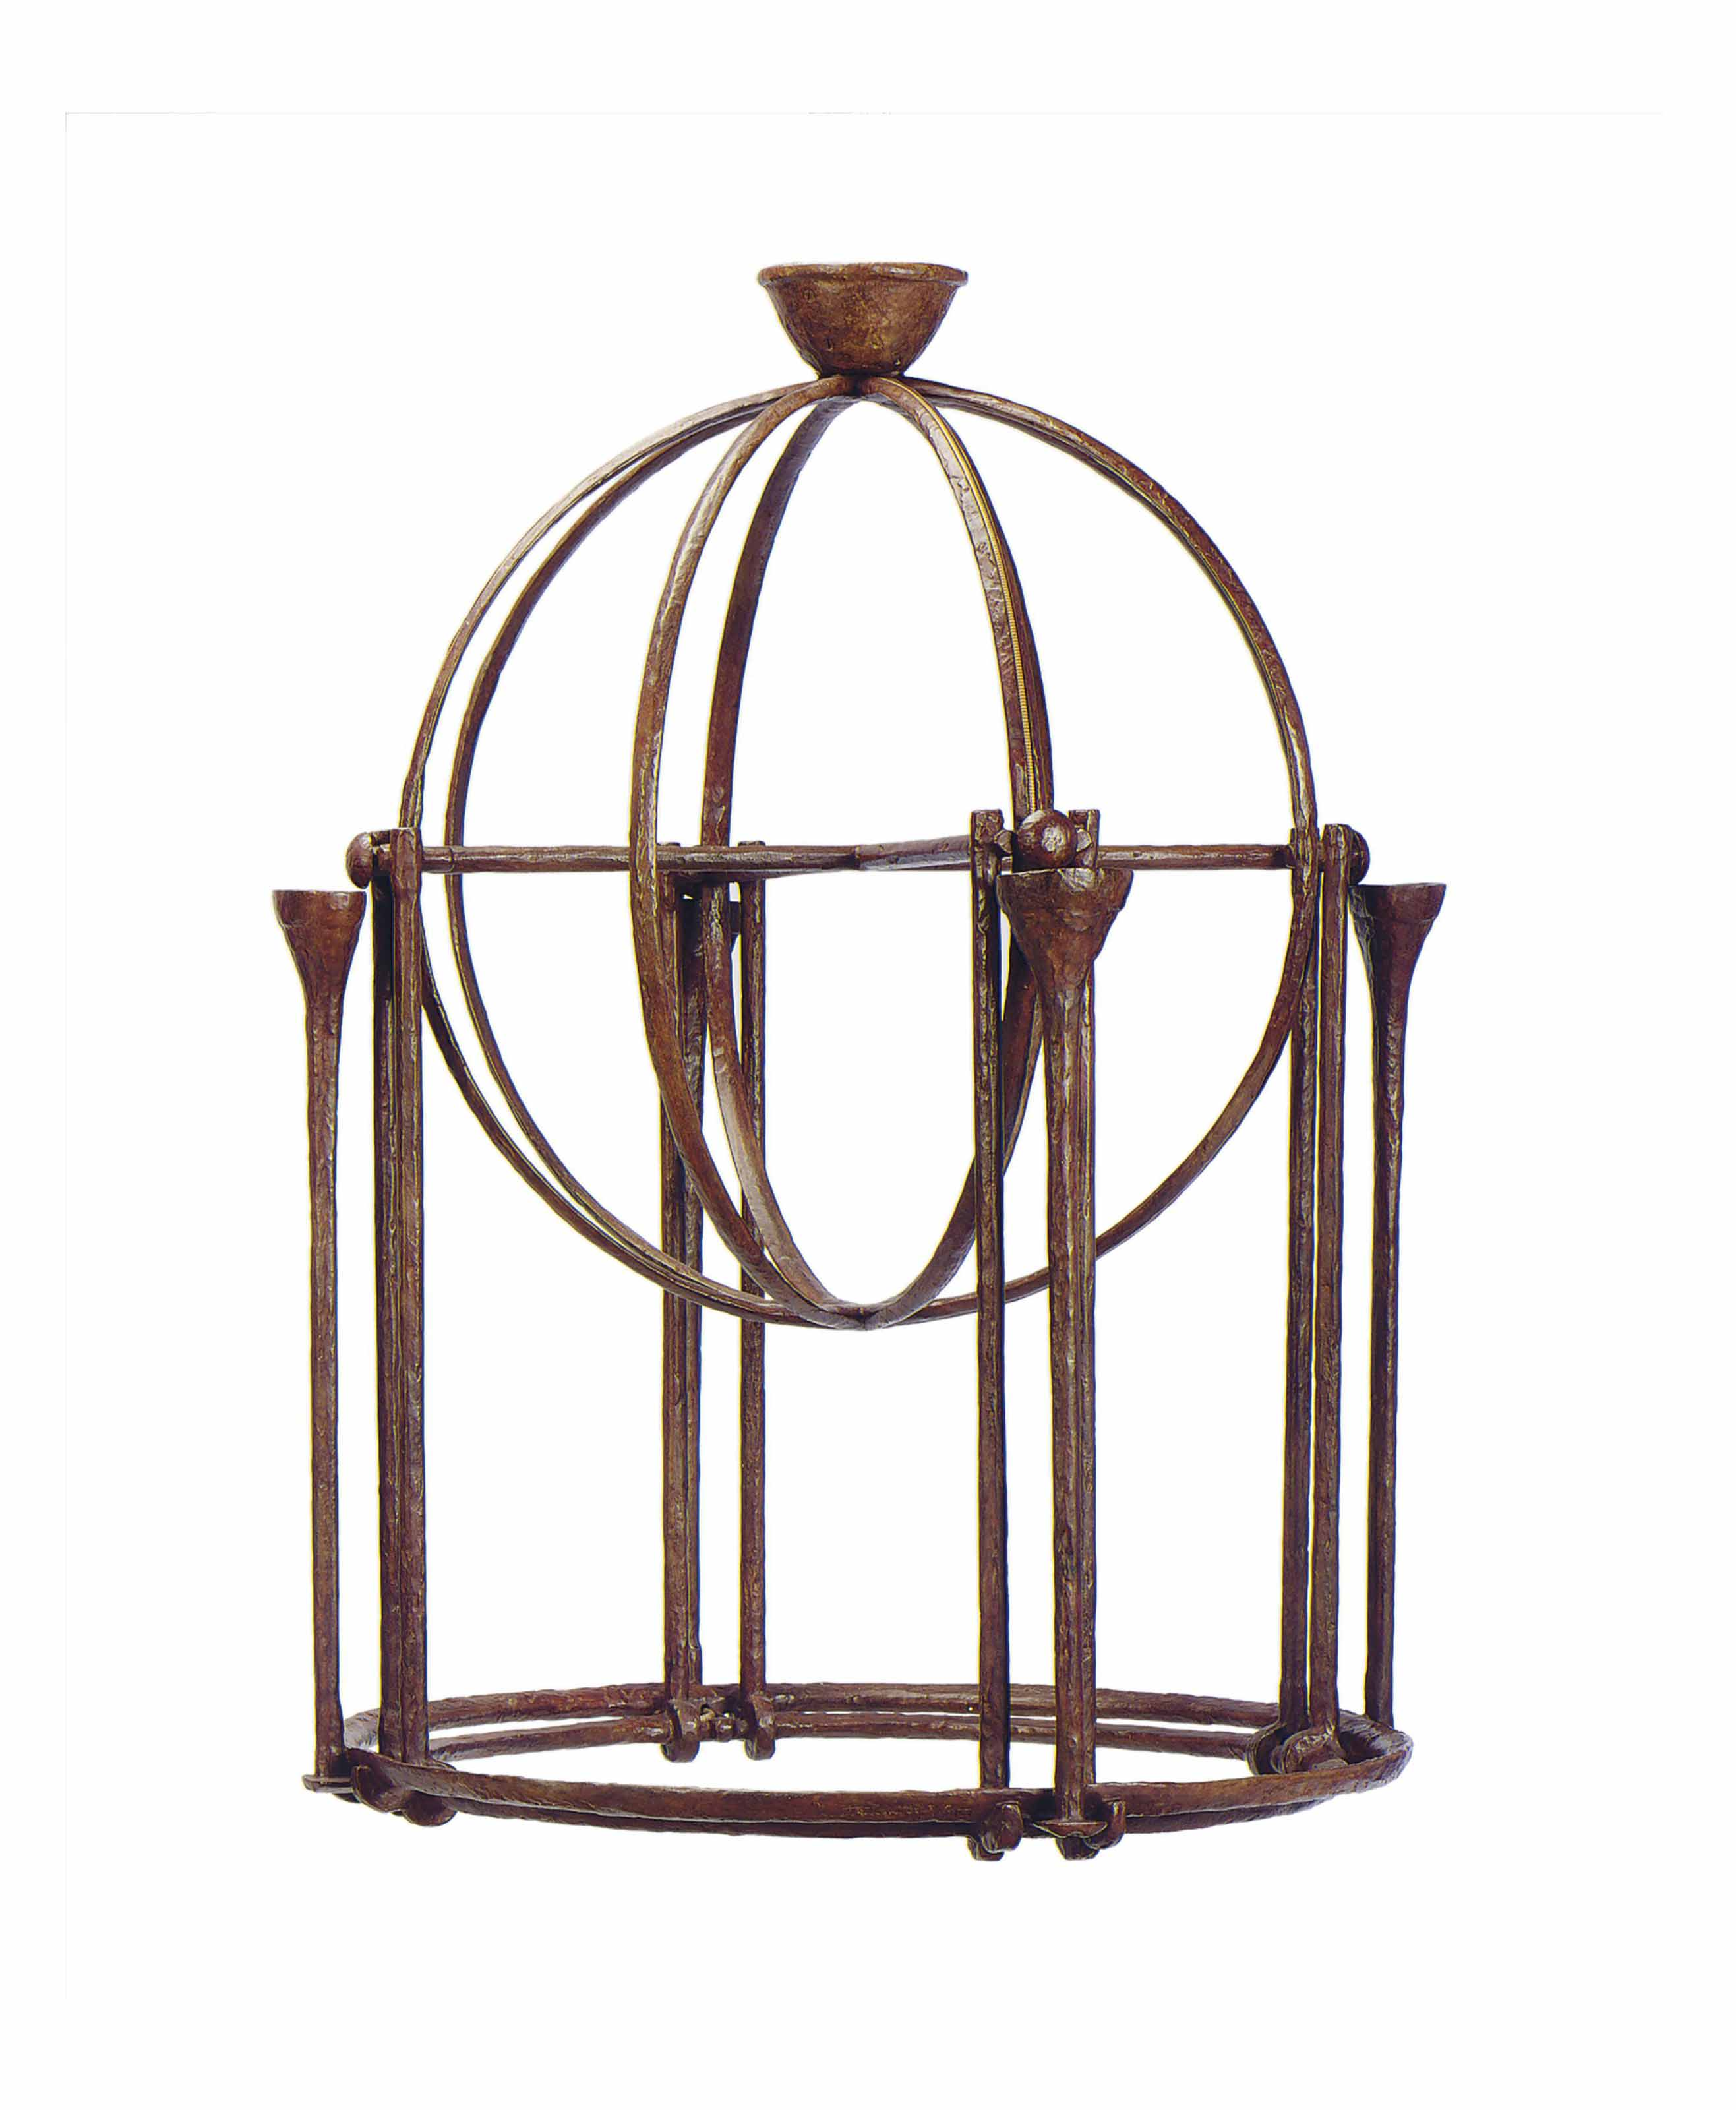 A FRENCH WROUGHT IRON FOUR-LIGHT HALL LANTERN,